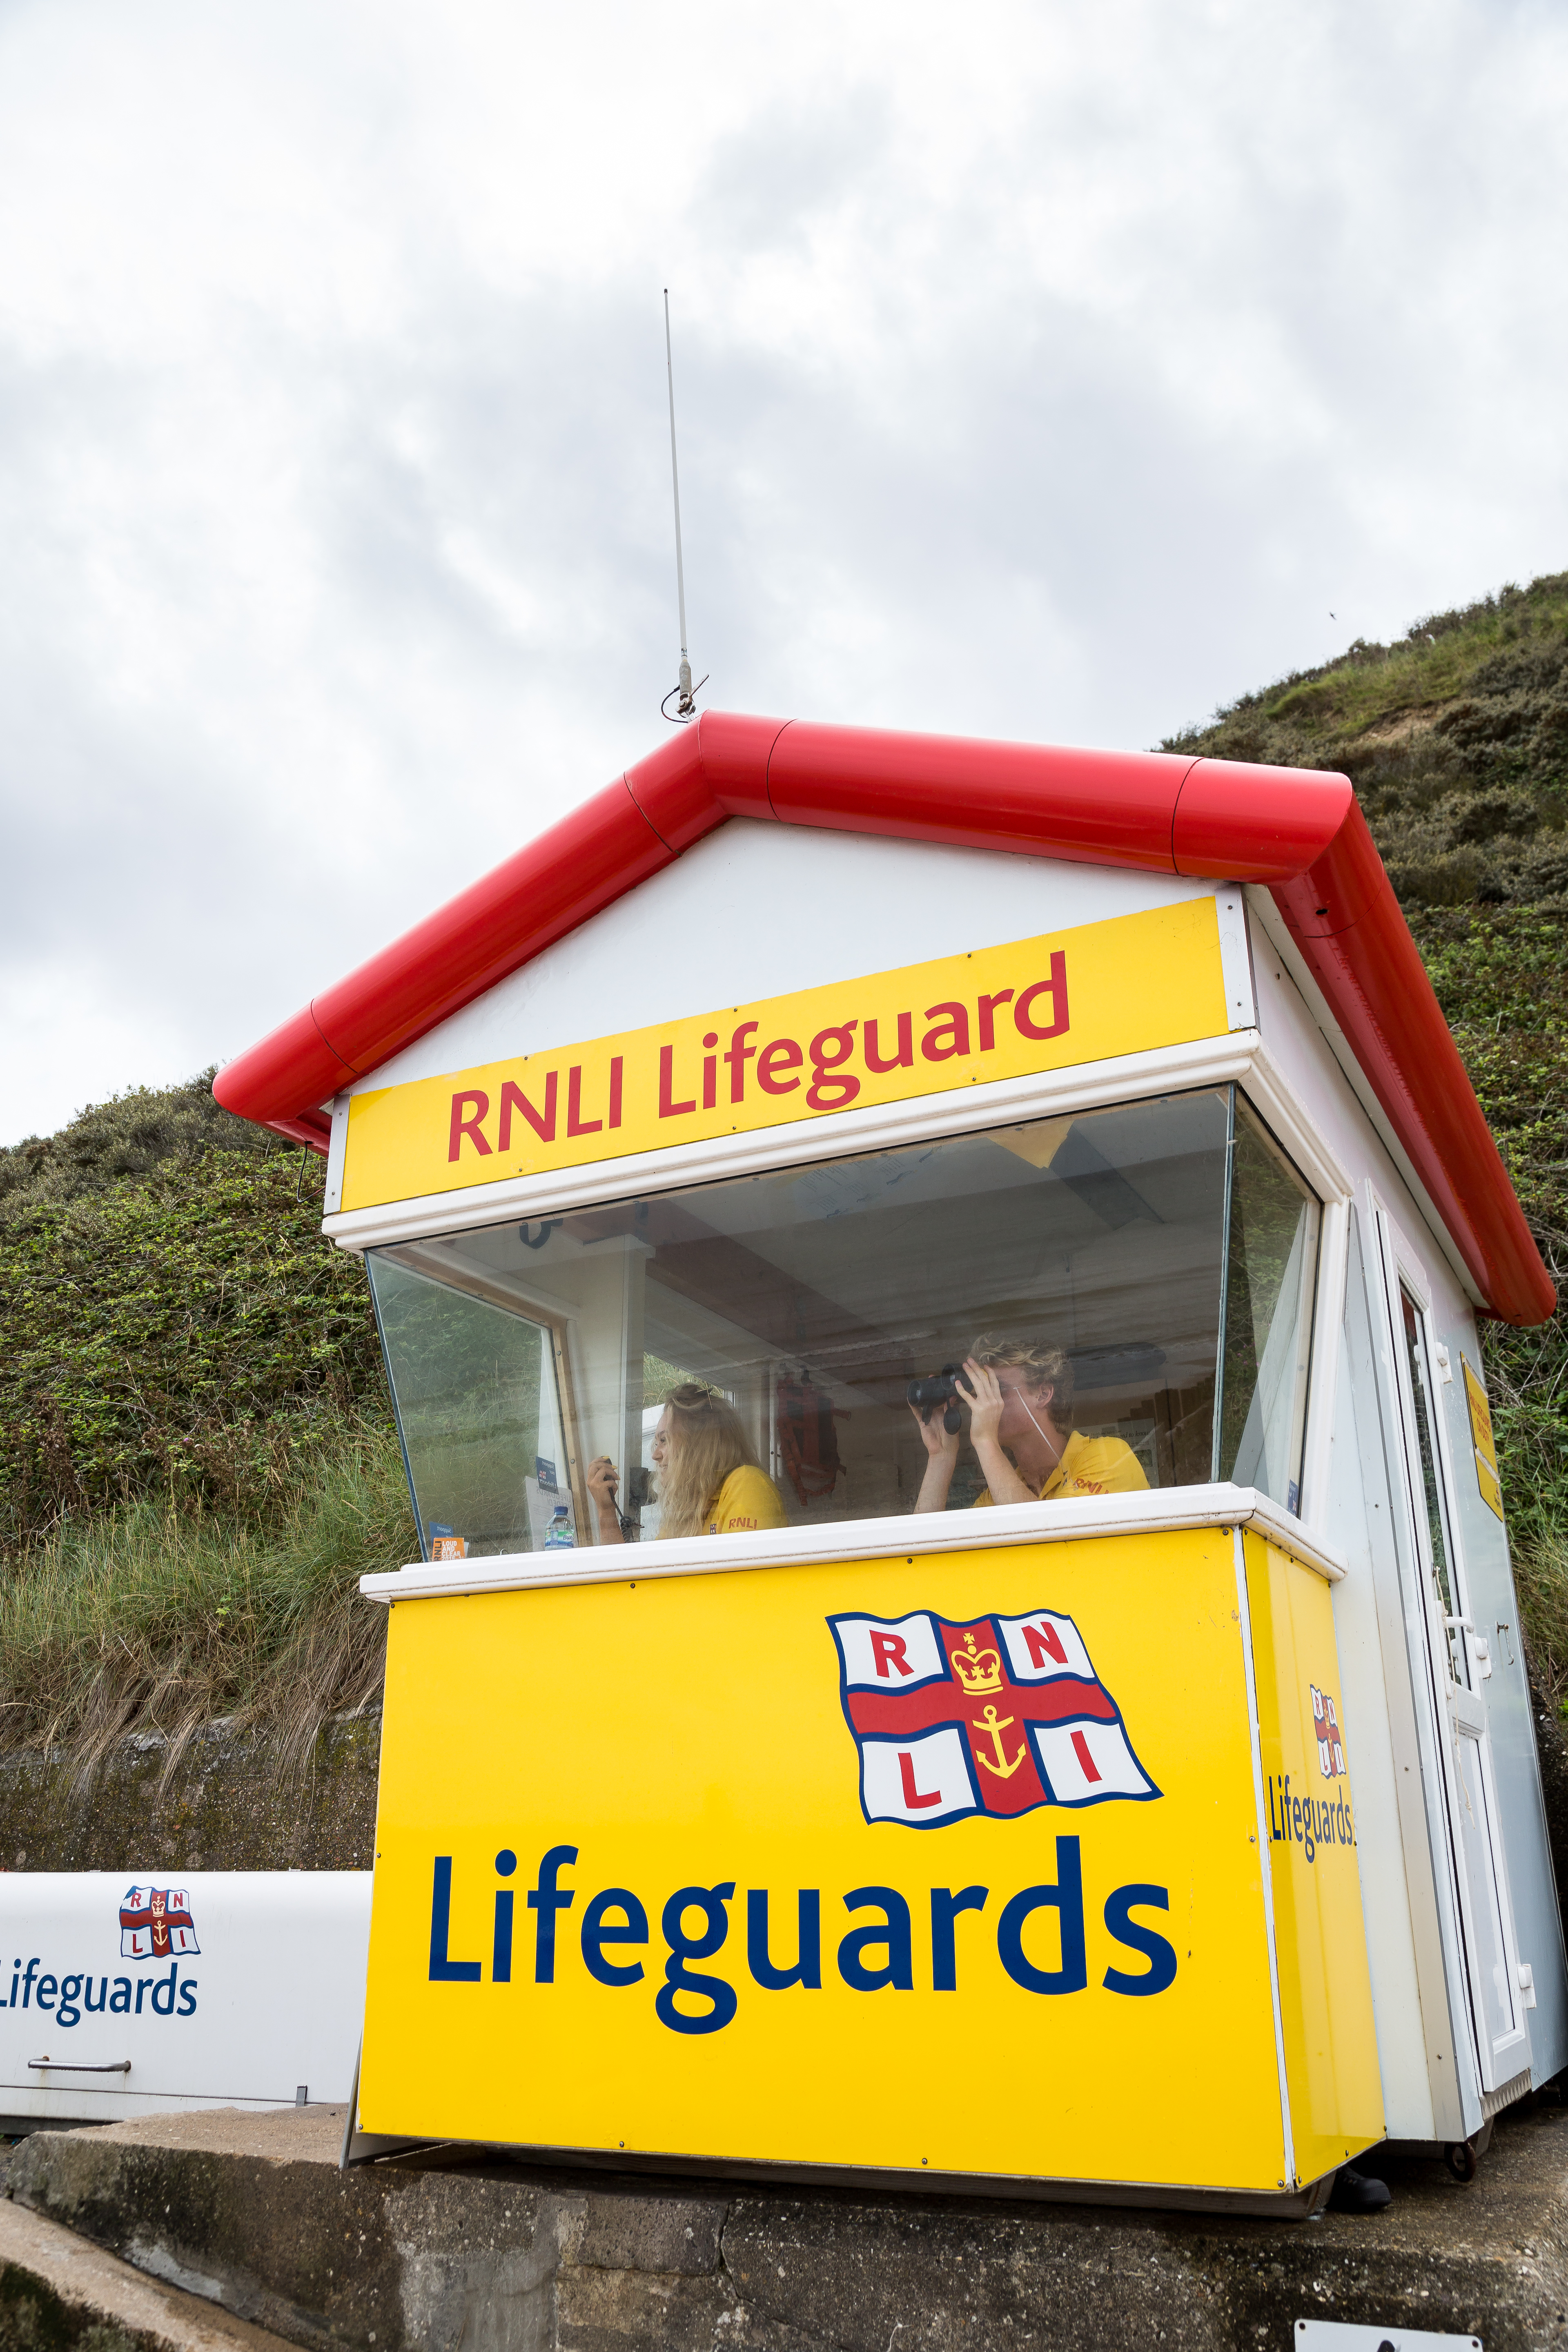 RNLI Lifeguards monitoring a beach